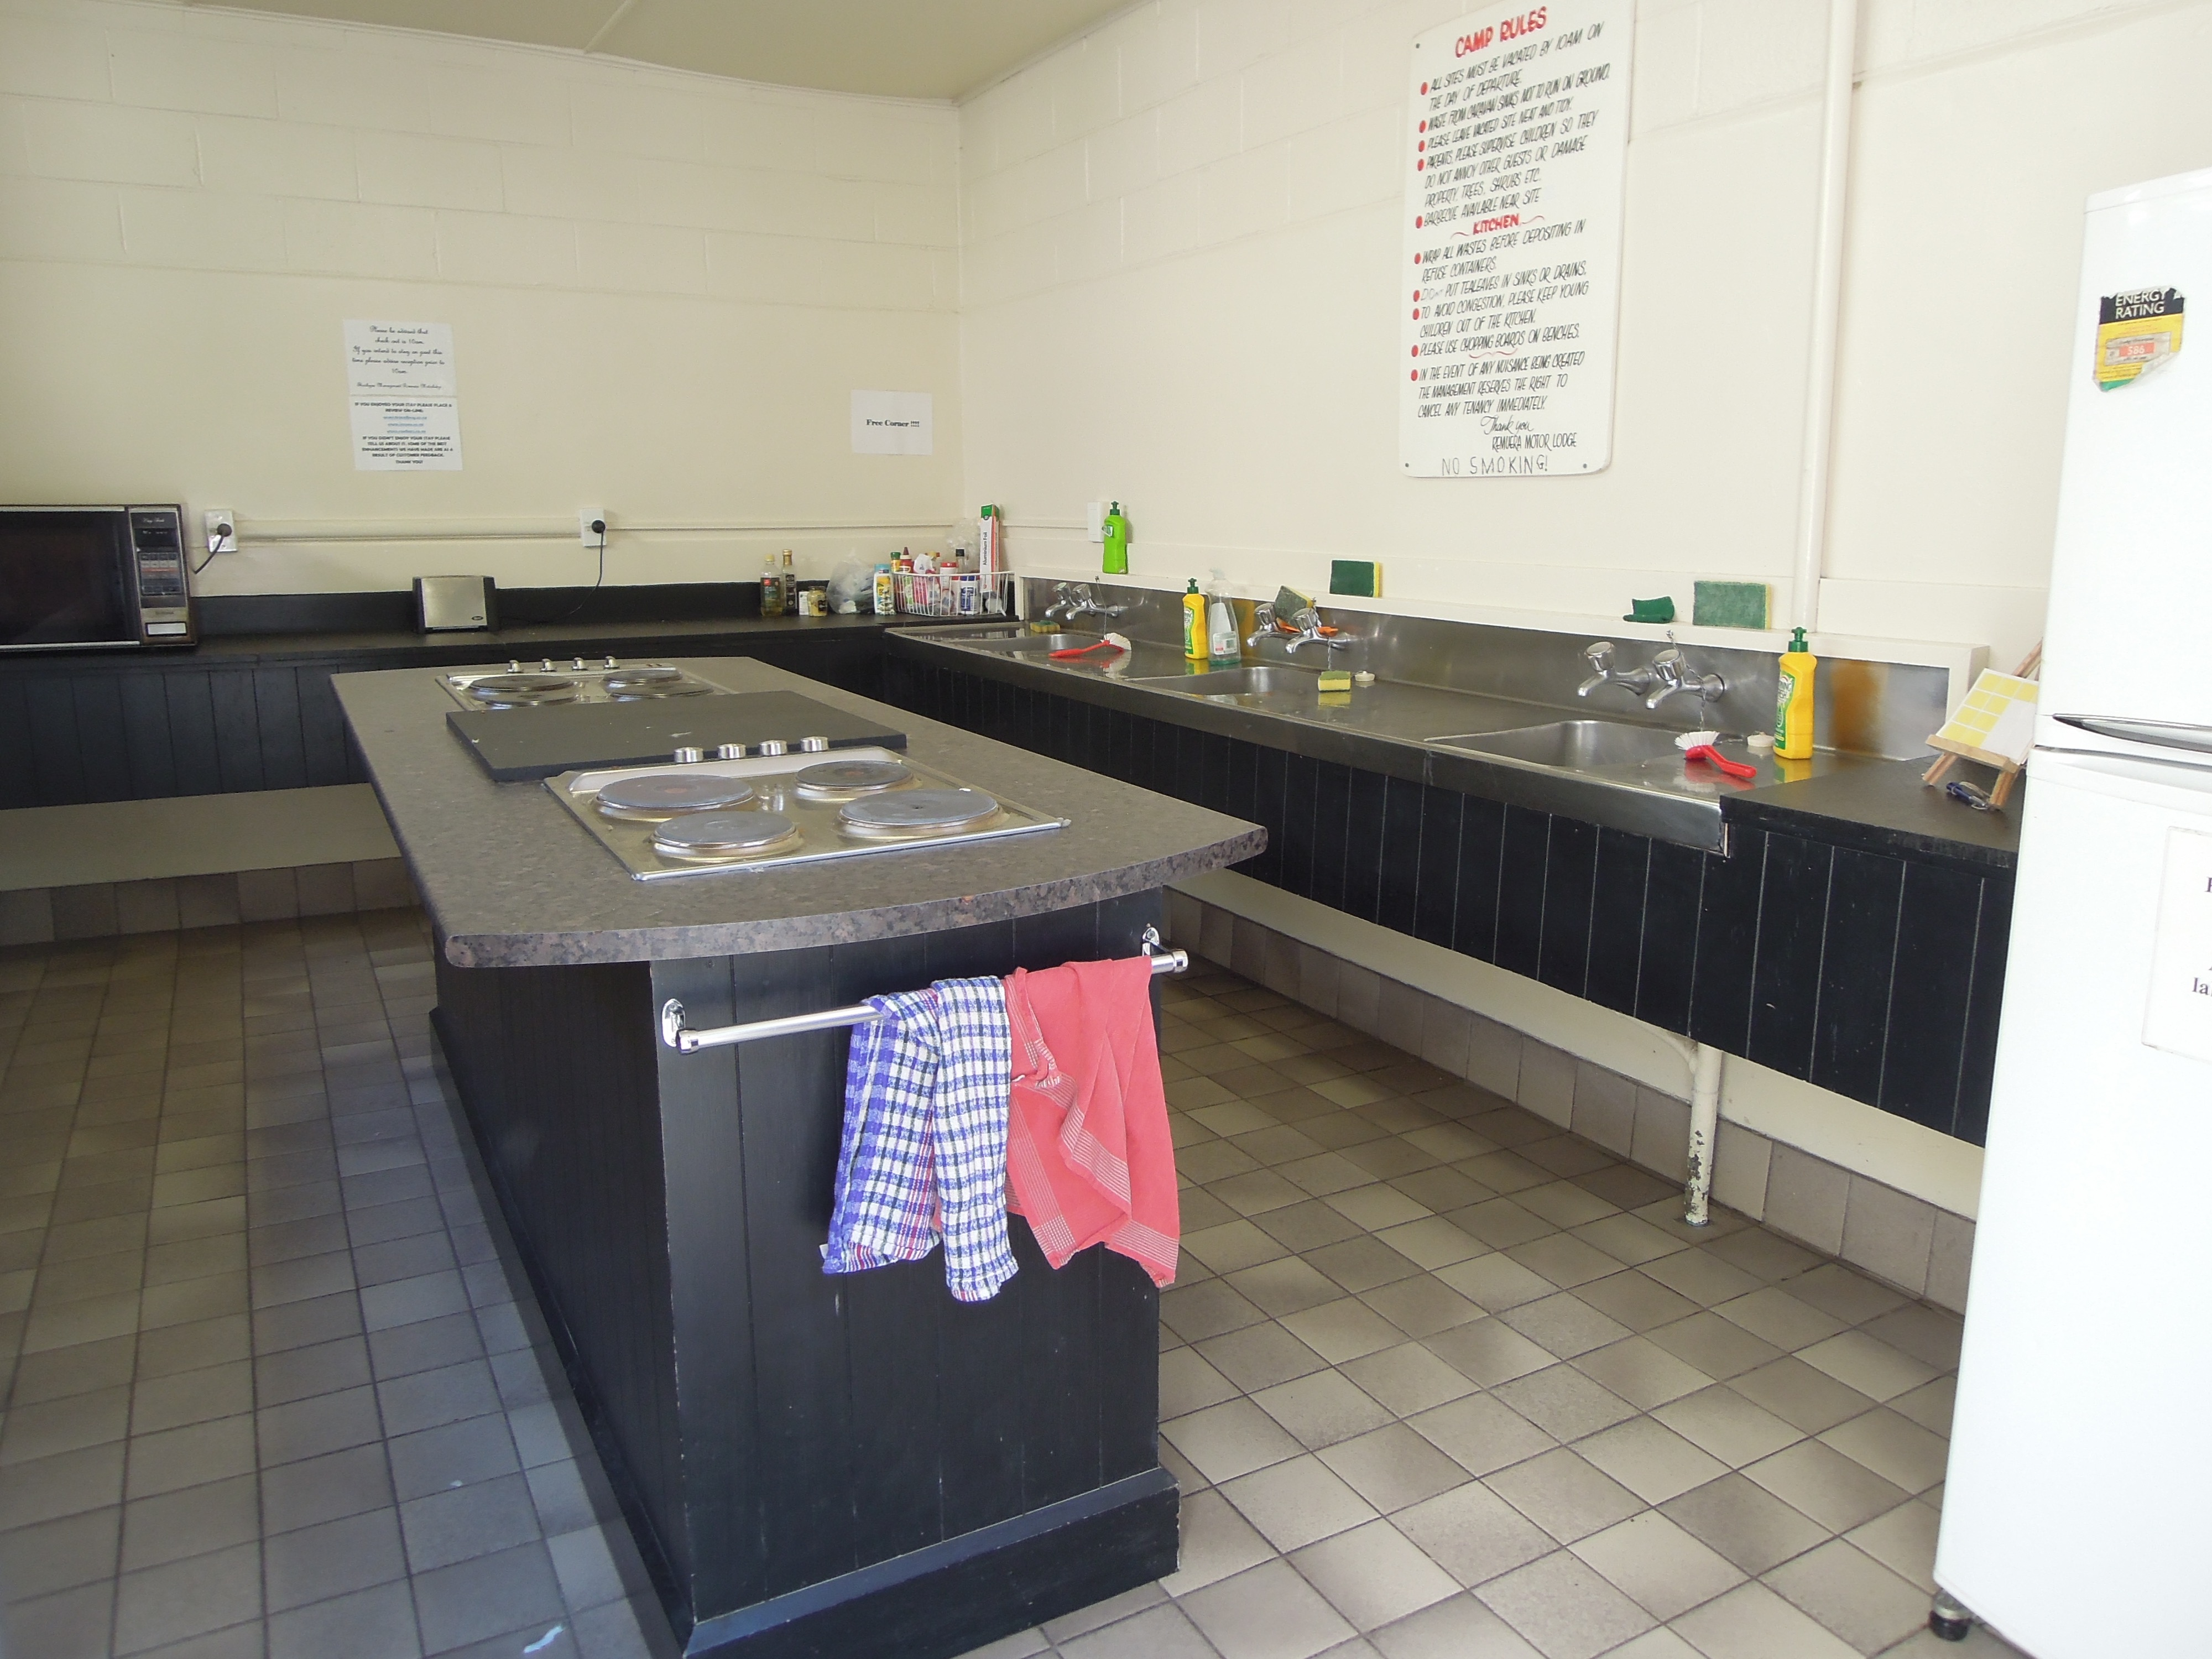 Remuera motor lodge inner city camping ground auckland for more details visit their website at remueramotorlodge dailygadgetfo Choice Image